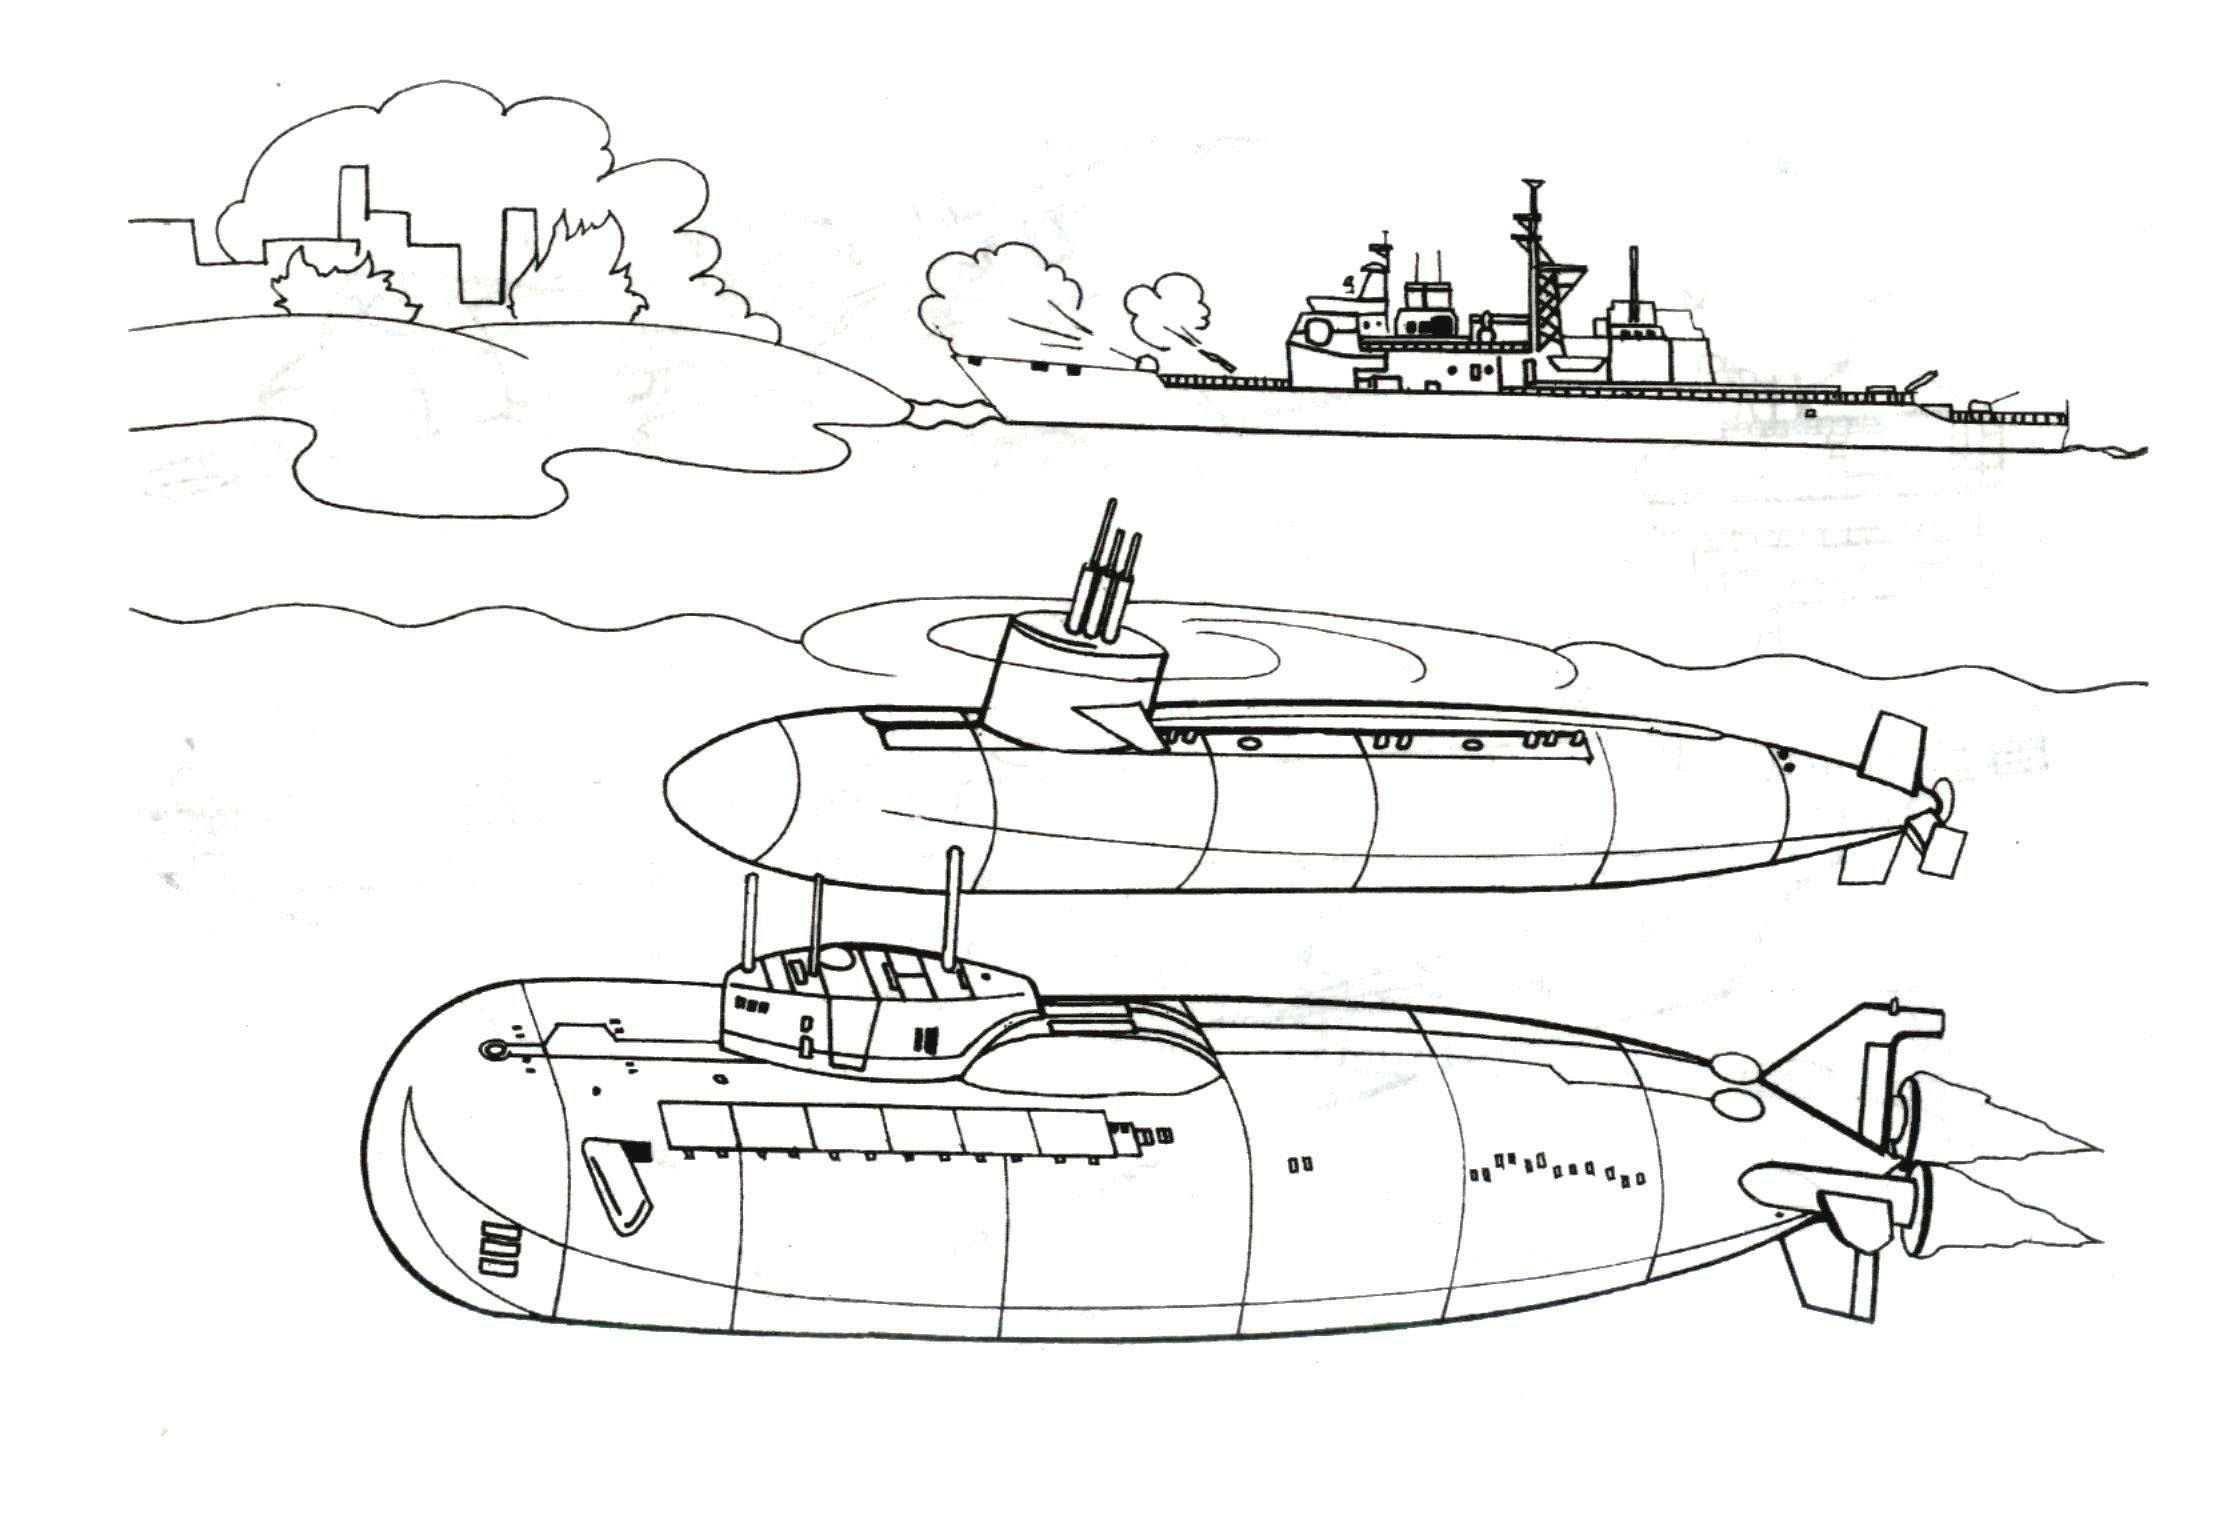 Two Big Submarines Coloring Page Jpg 2 240 1 520 Pixels Coloring